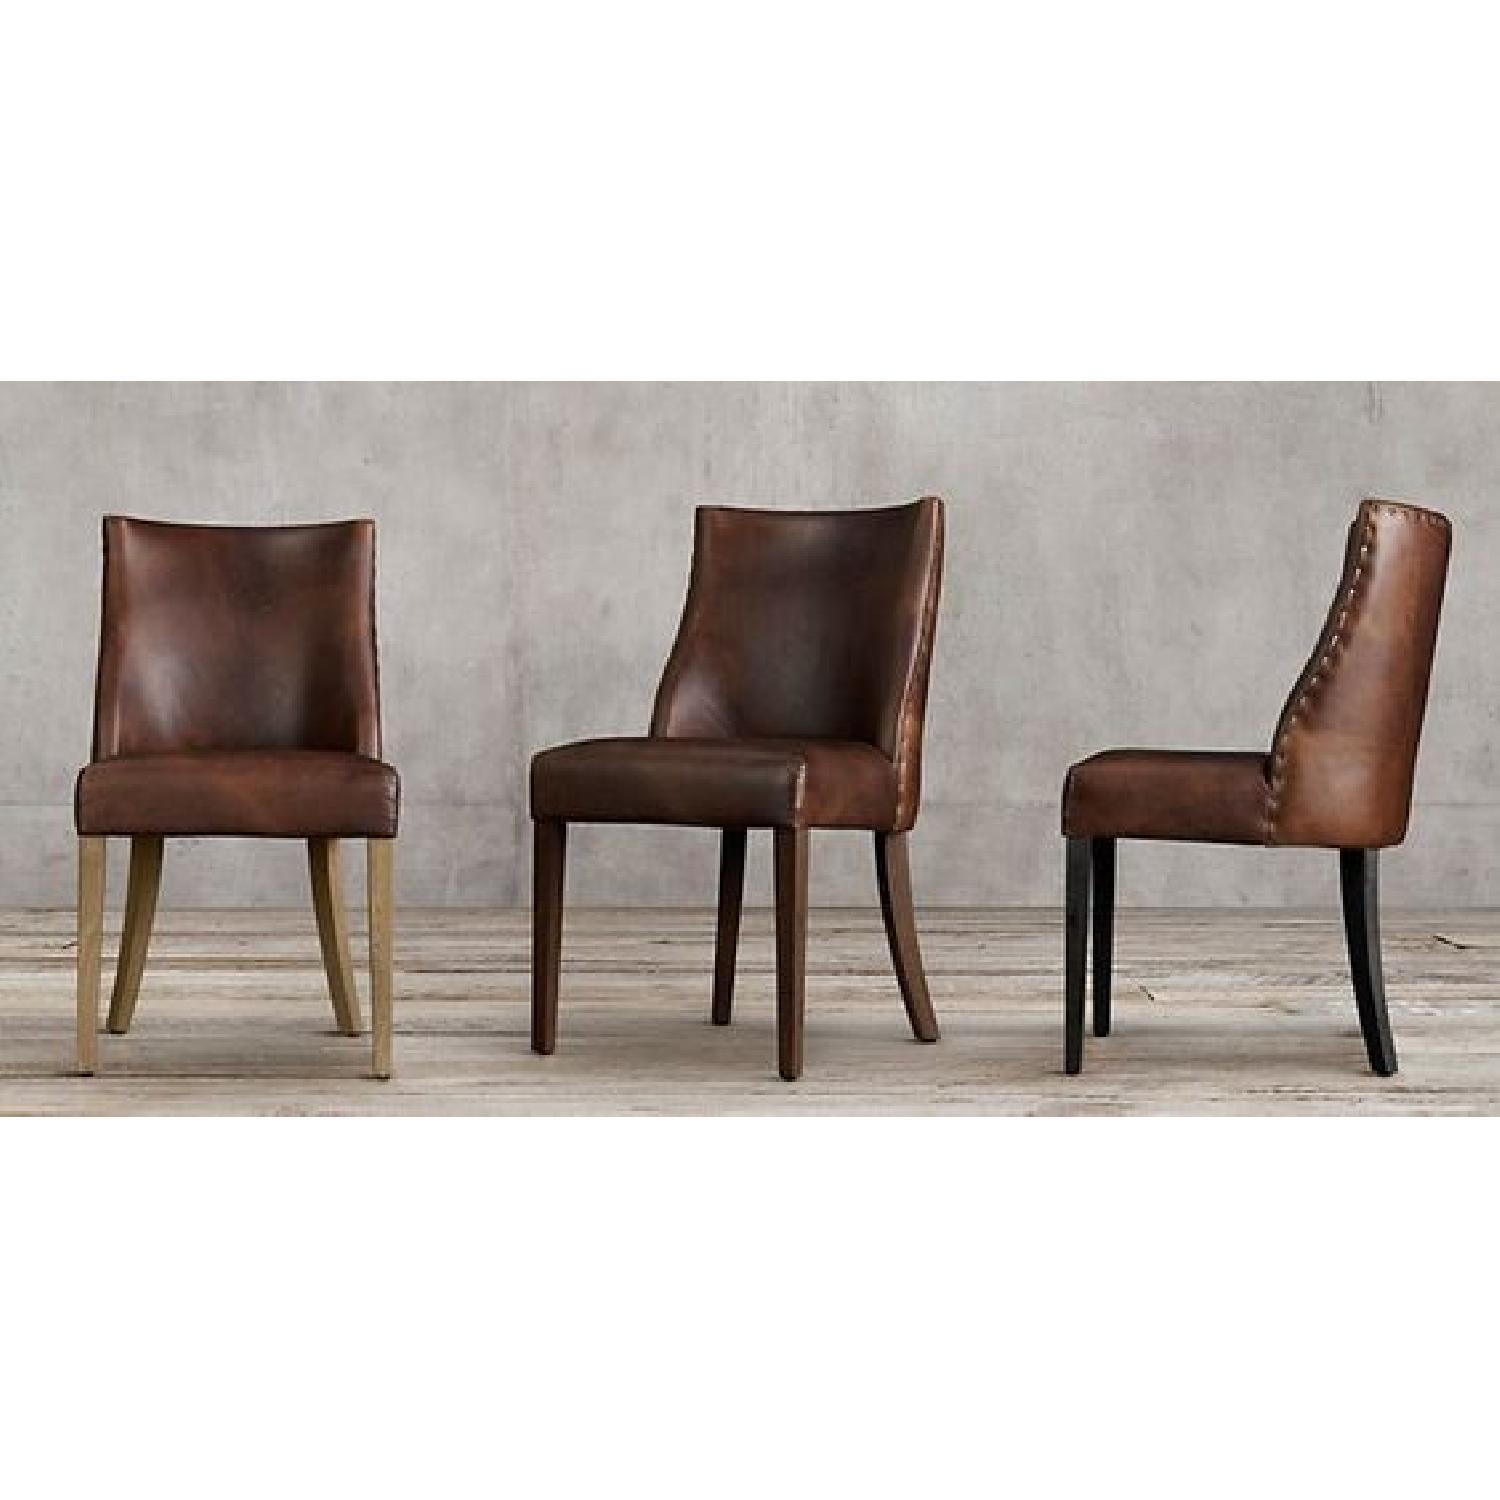 Restoration Hardware Barrel Back Nailhead Dining Chair - image-0